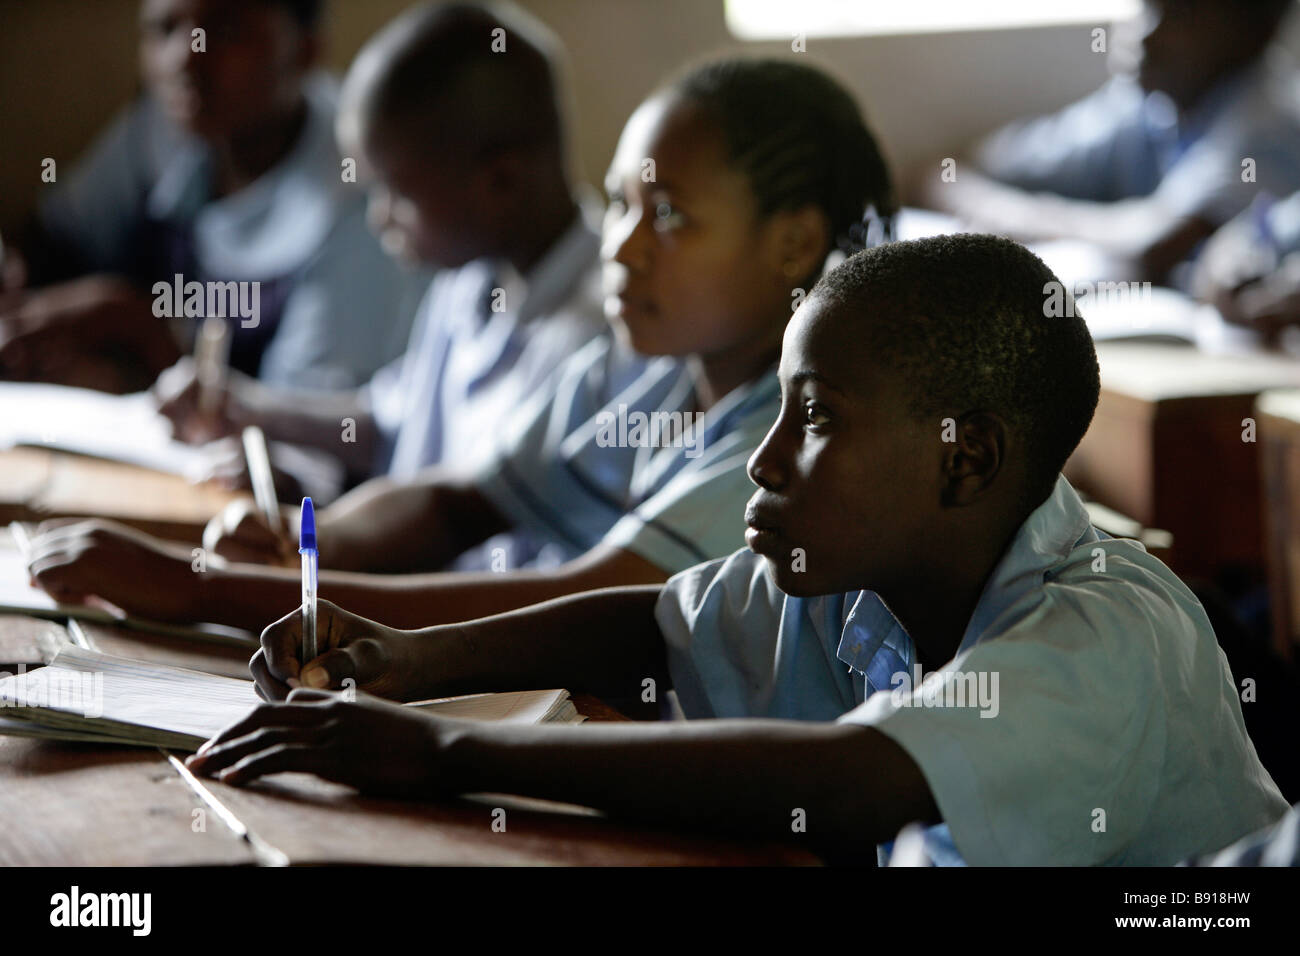 Nigeria: classroom of a secondary school in Maiduguri - Stock Image